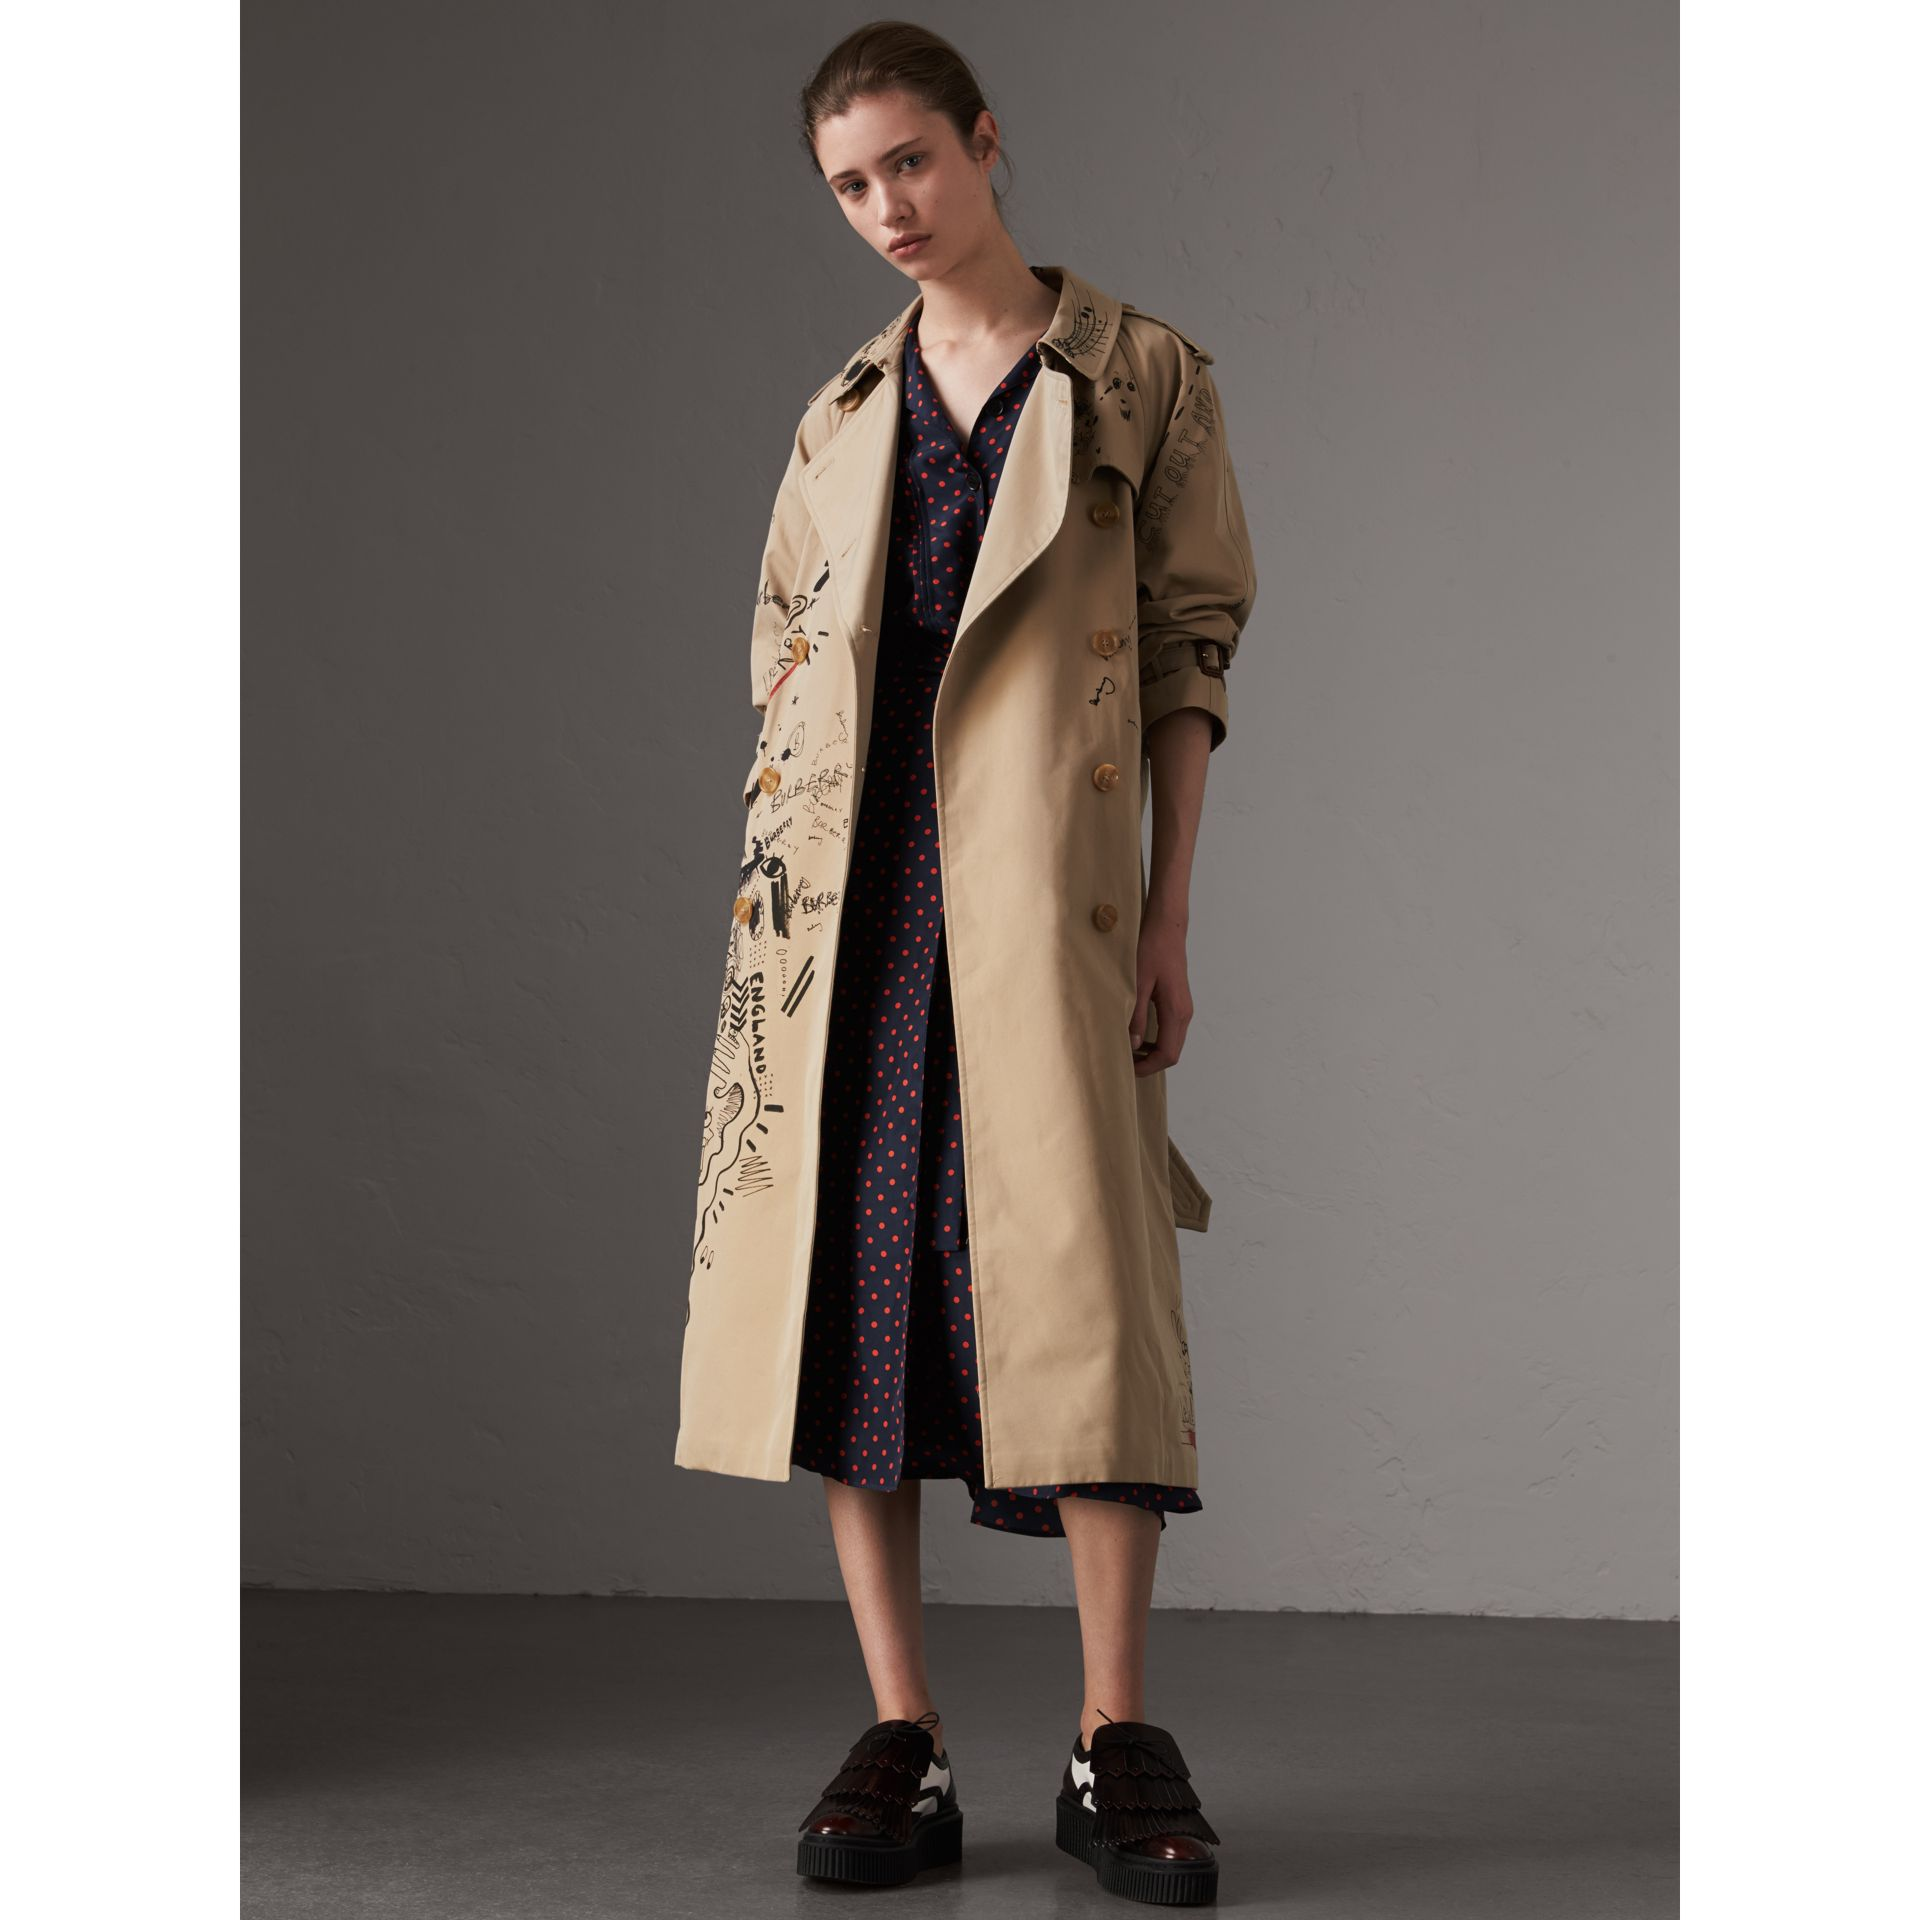 Sketch Print Cotton Gabardine Trench Coat in Honey - Women | Burberry Singapore - gallery image 5